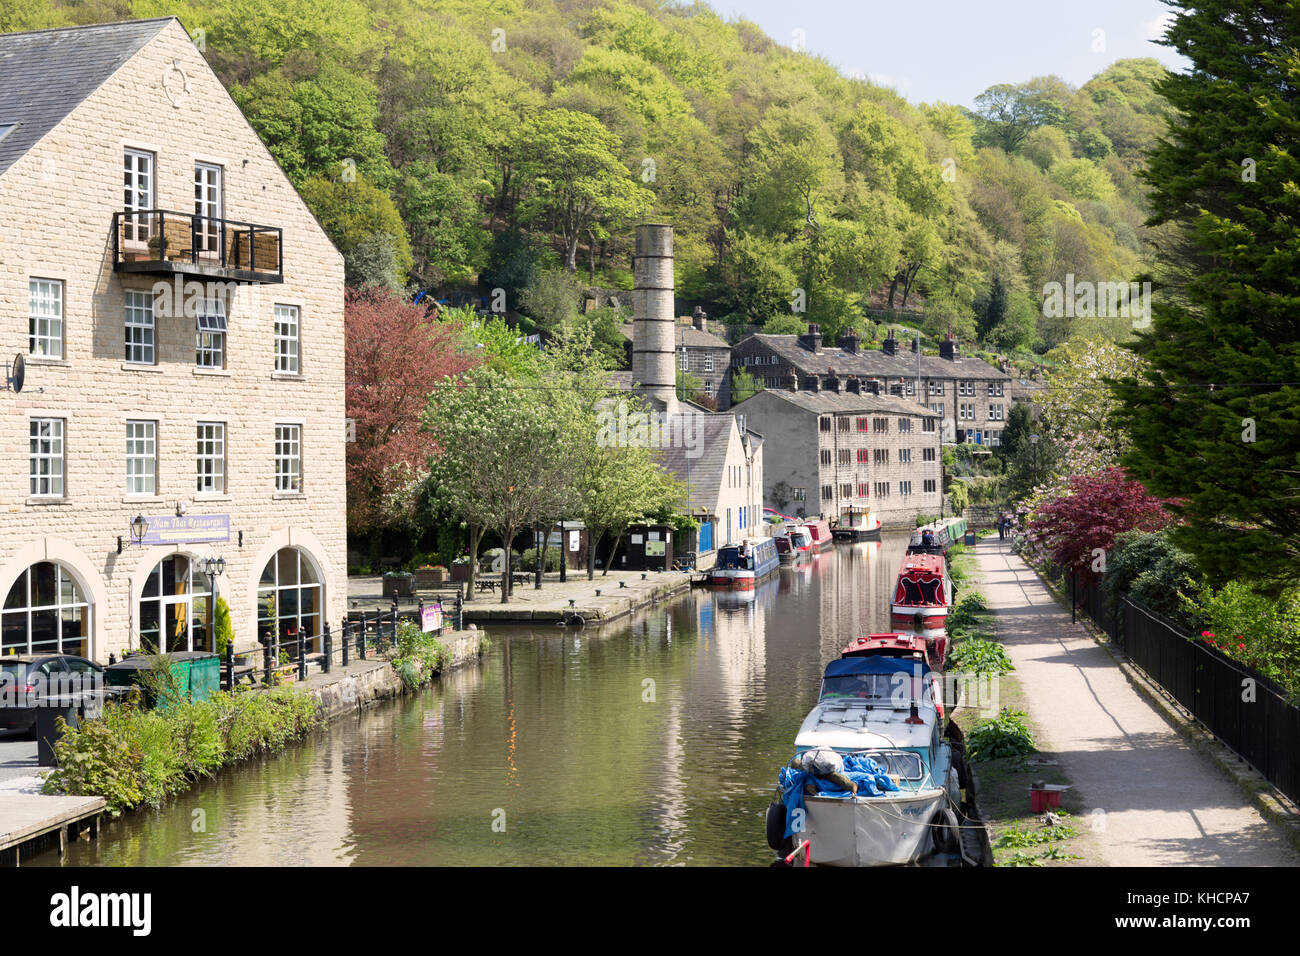 UK, West Yorkshire, view along the Rochdale canal at Hebden Bridge. - Stock Image